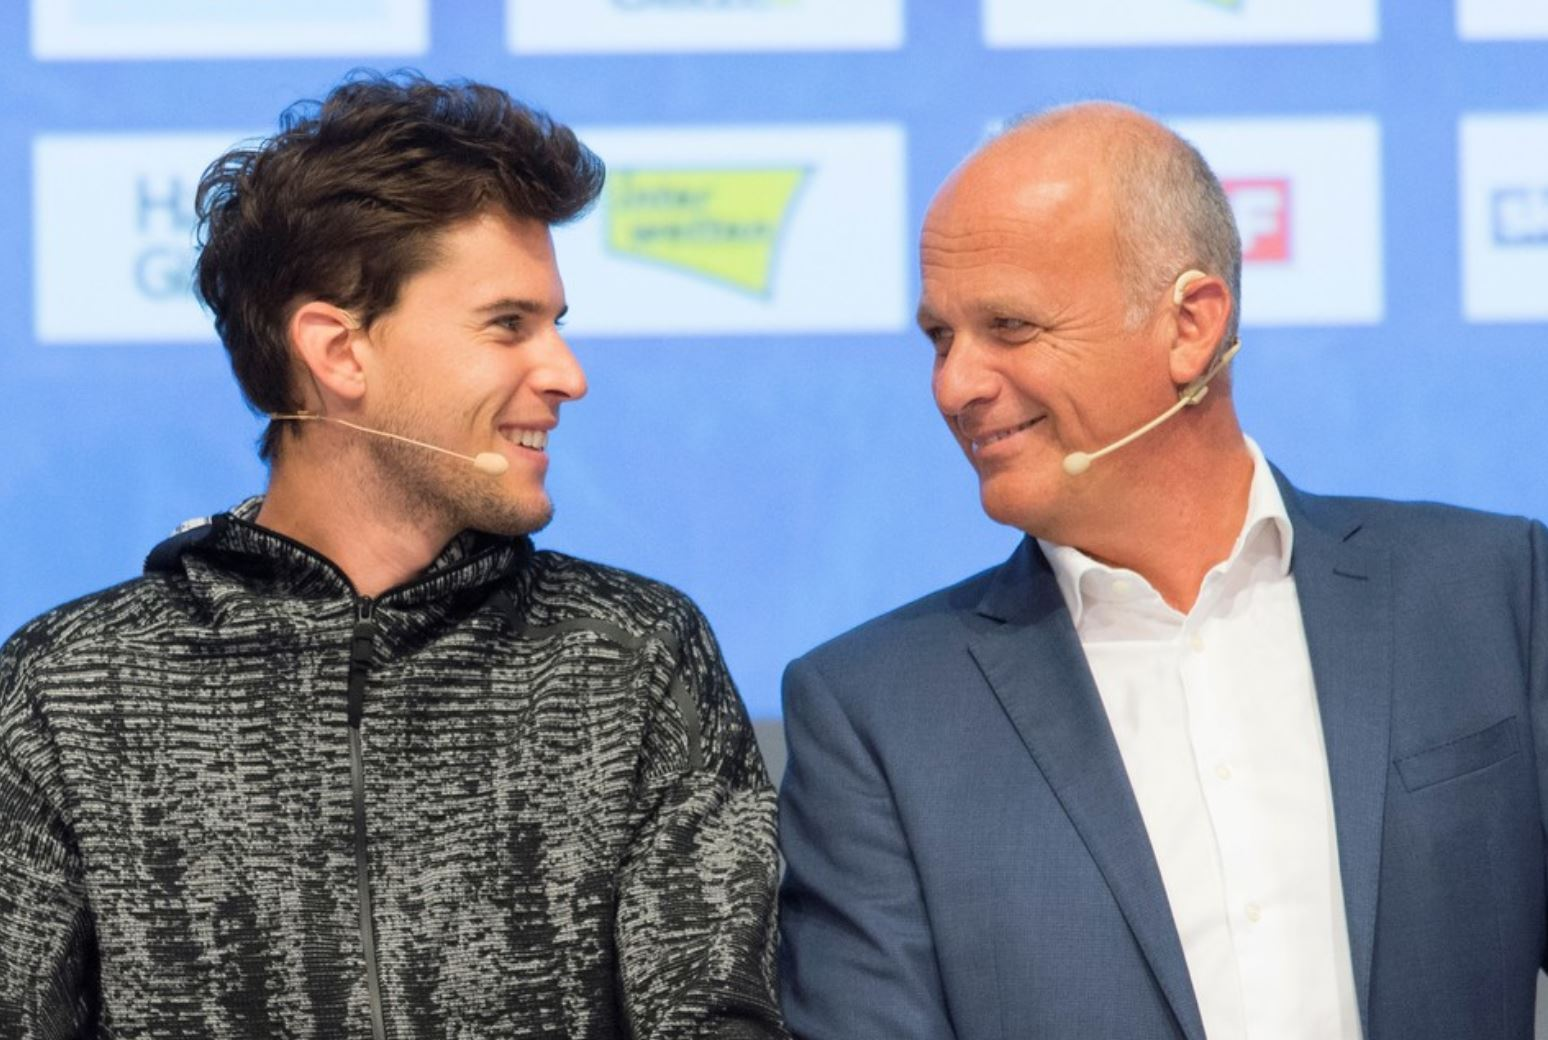 Thiem S Agent Djokovic Is The Only One Who Needs To Apologize